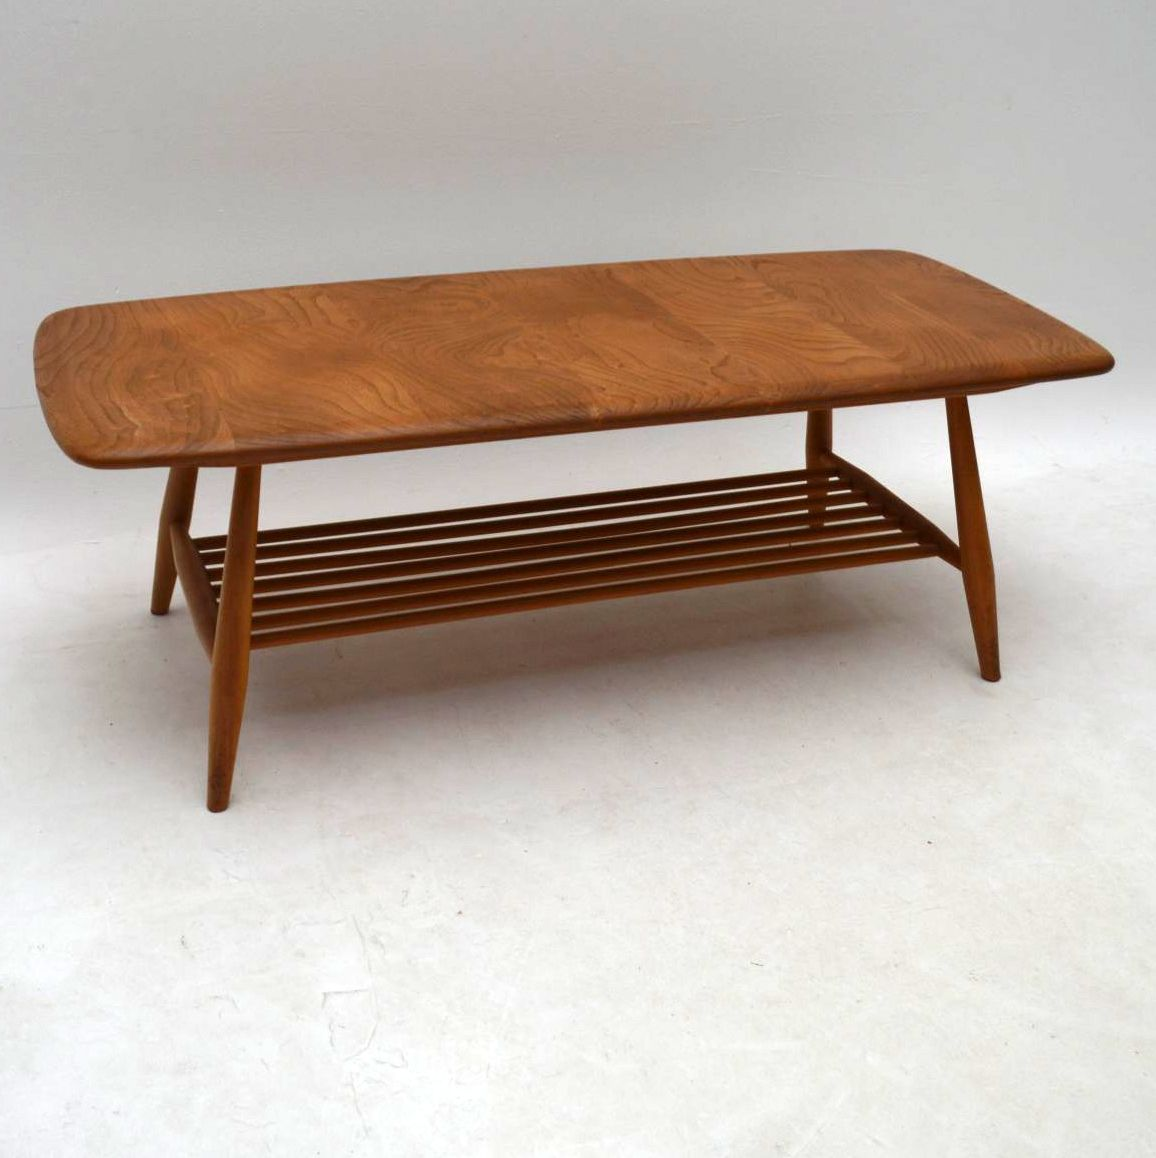 1960 S Vintage Ercol Coffee Table In Solid Elm Retrospective Interiors Vintage Furniture